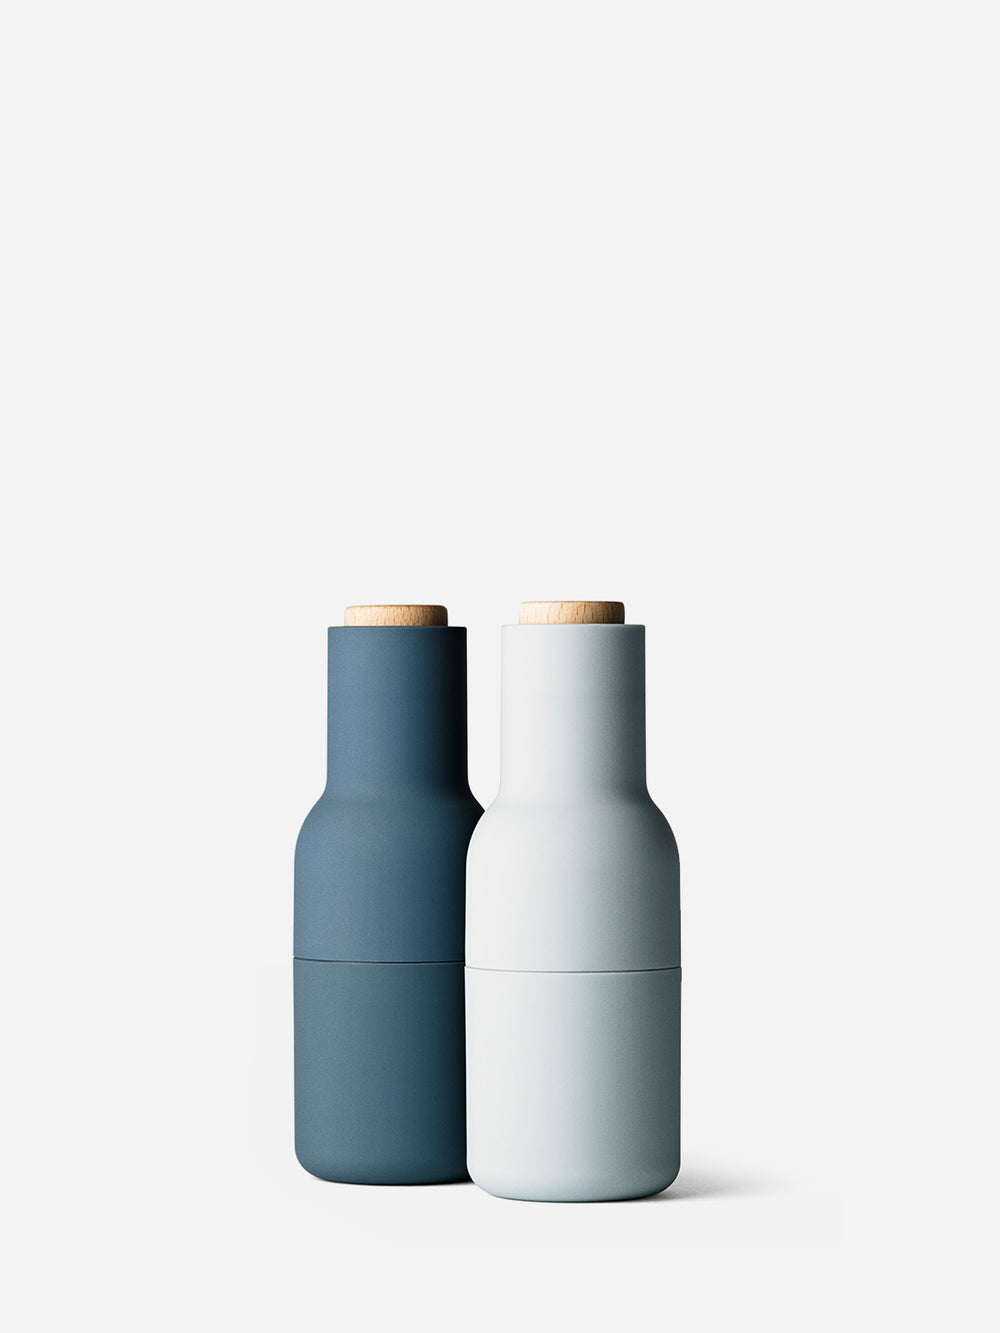 BLUE bottle grinder by MENU